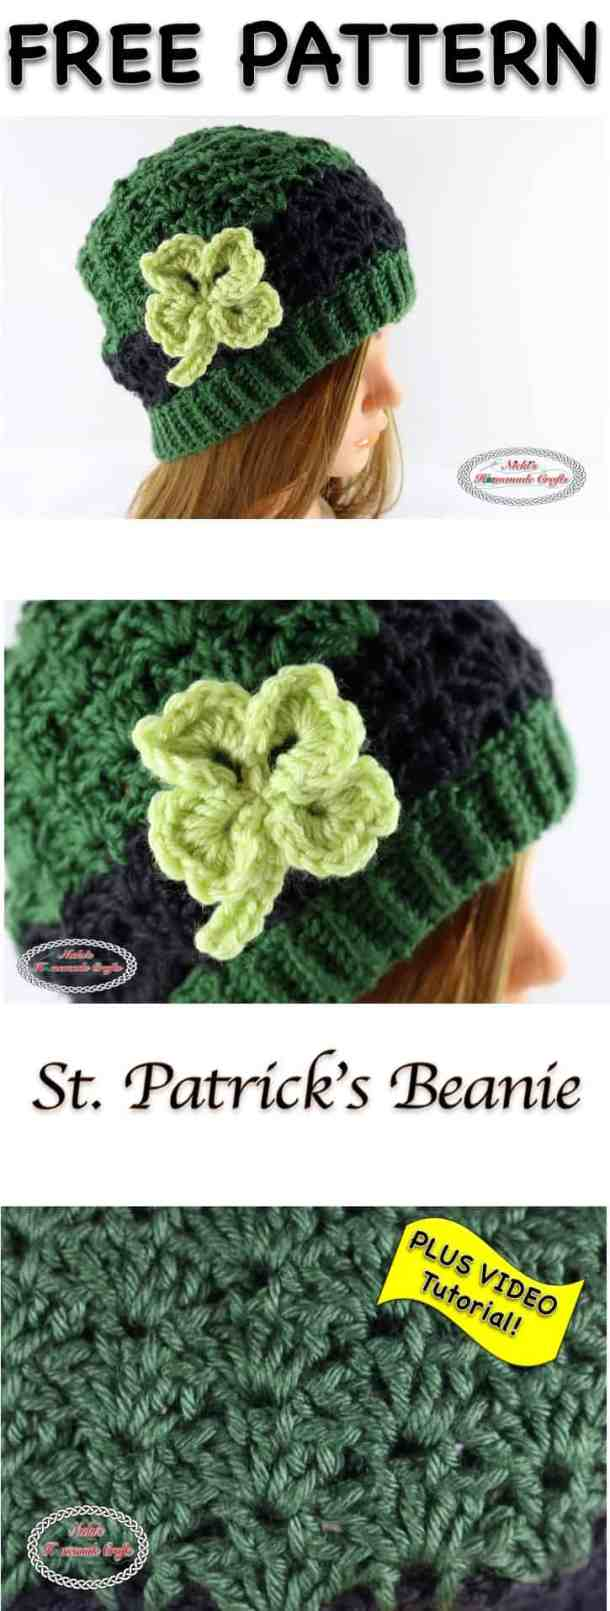 St patricks beanie free crochet pattern nickis homemade crafts st patricks beanie free crochet pattern by nickis homemade crafts fandeluxe Image collections